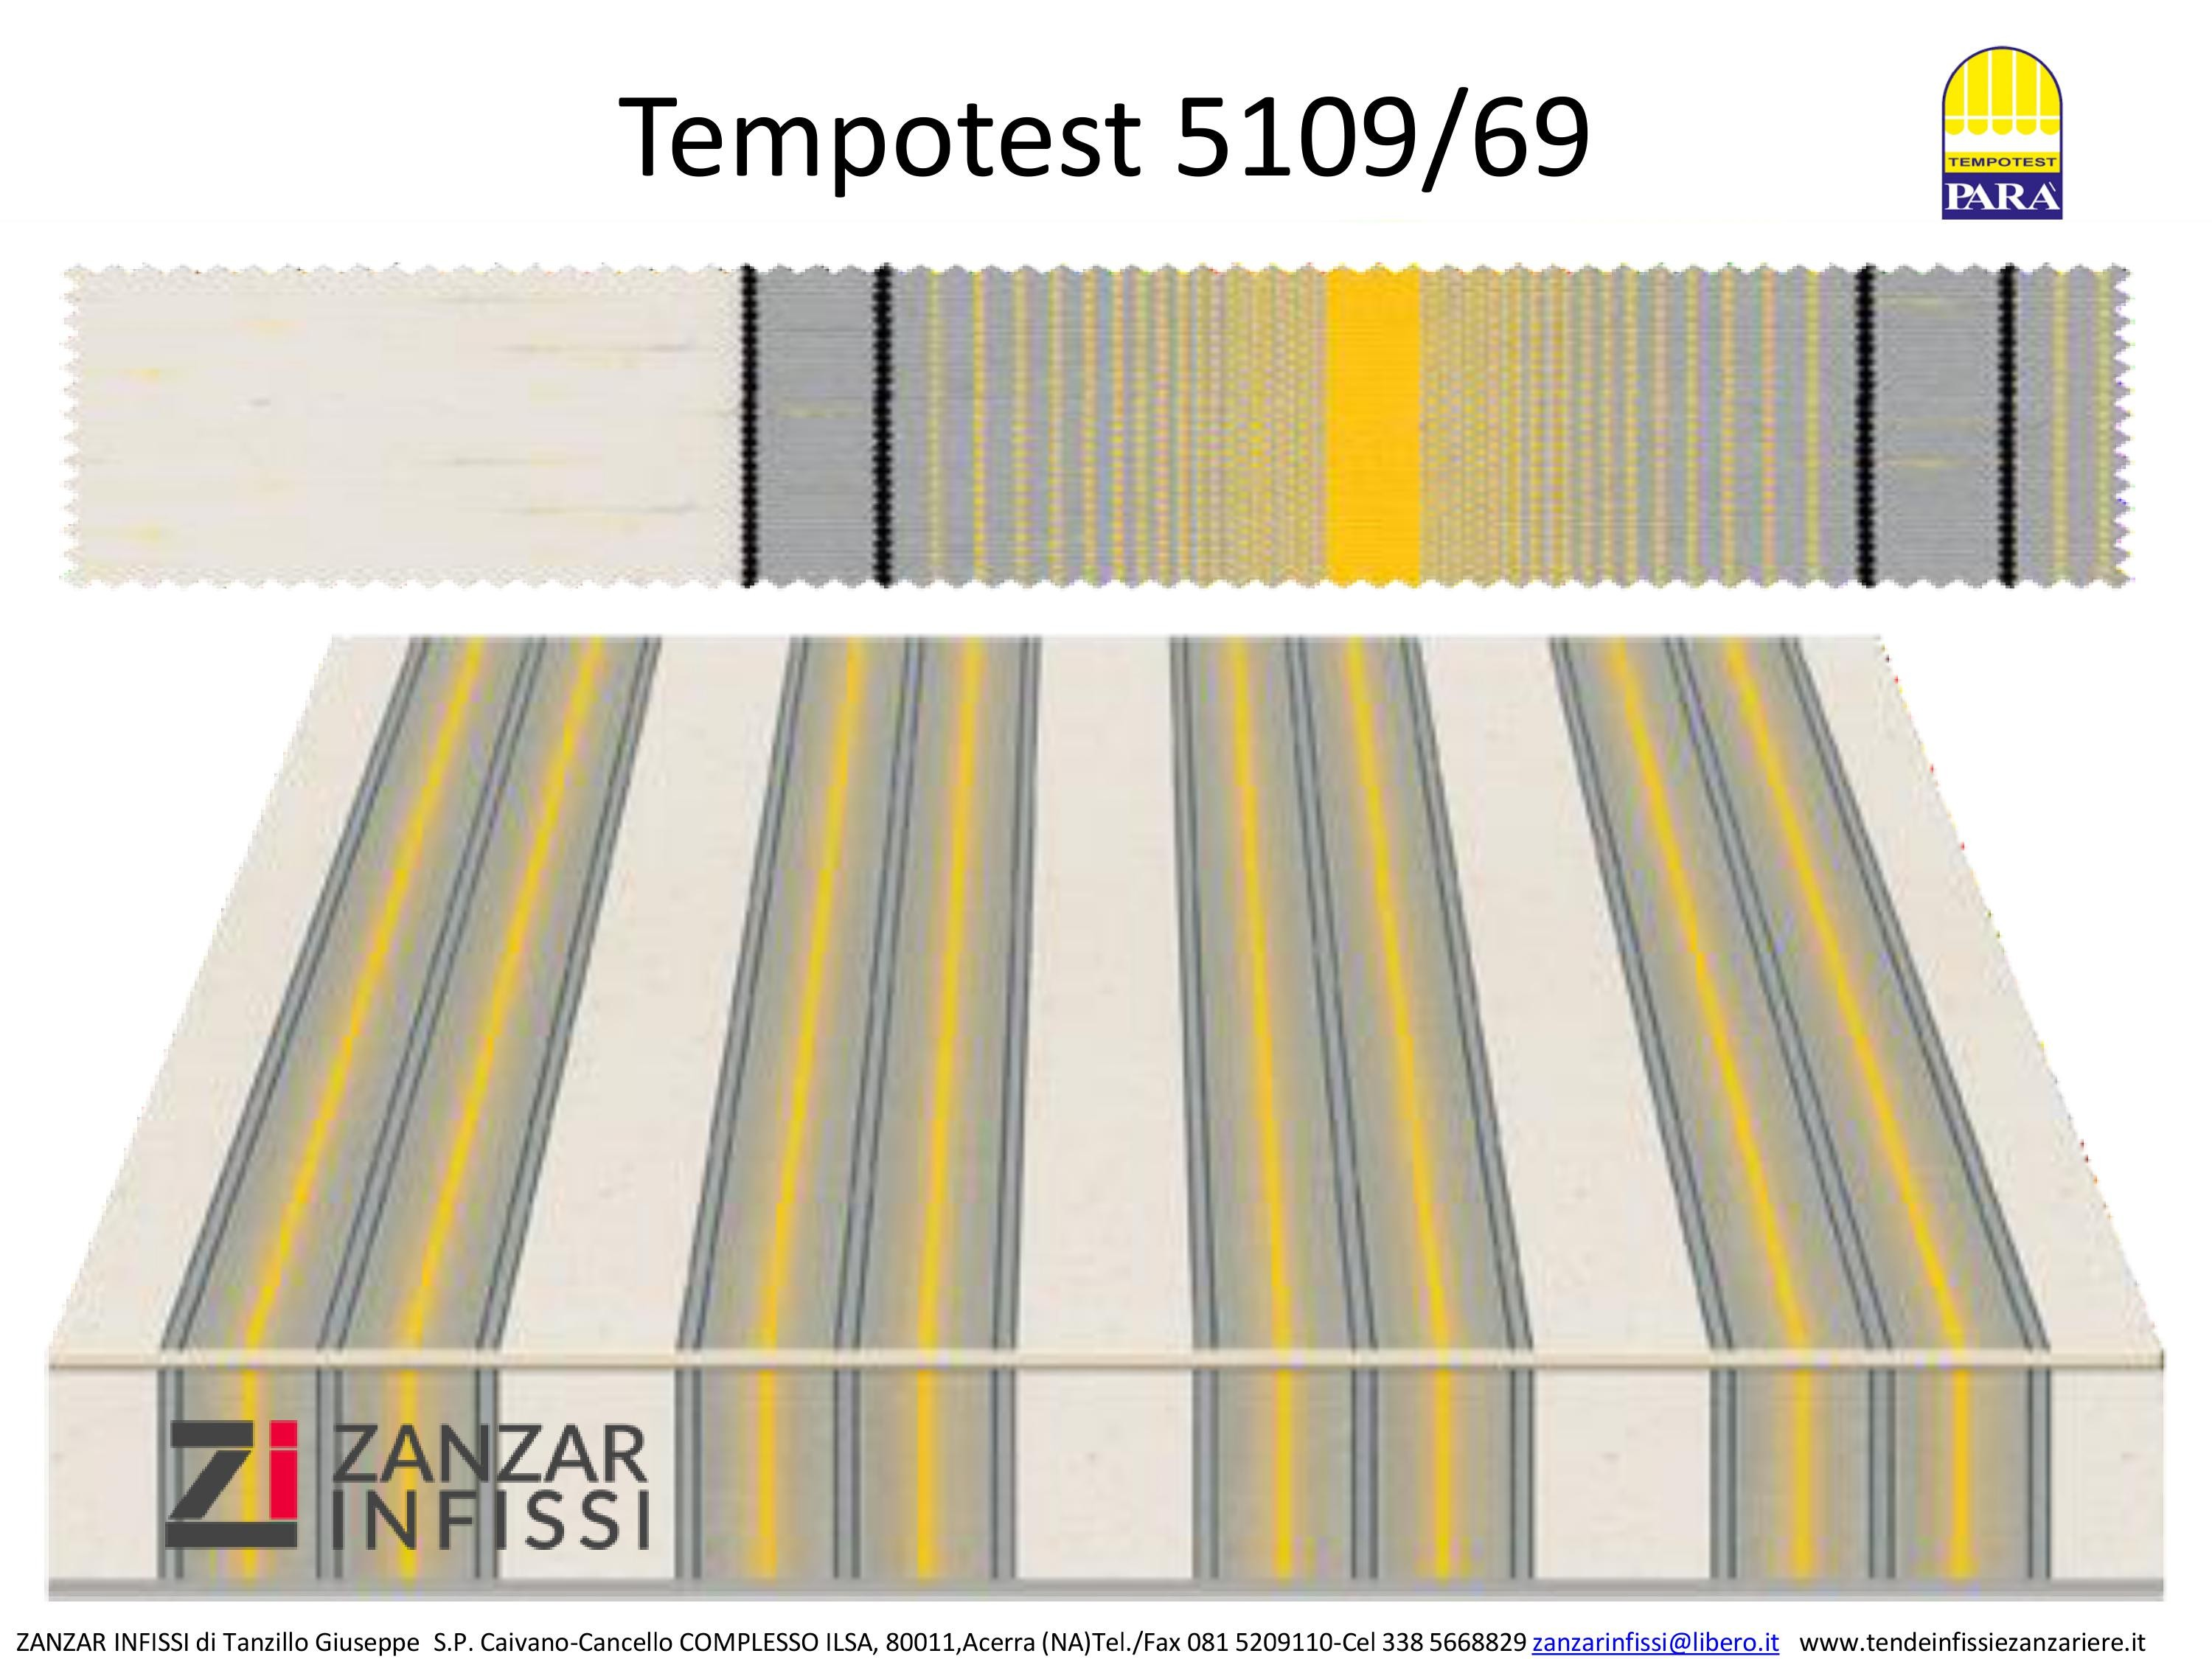 Tempotest 5109/69